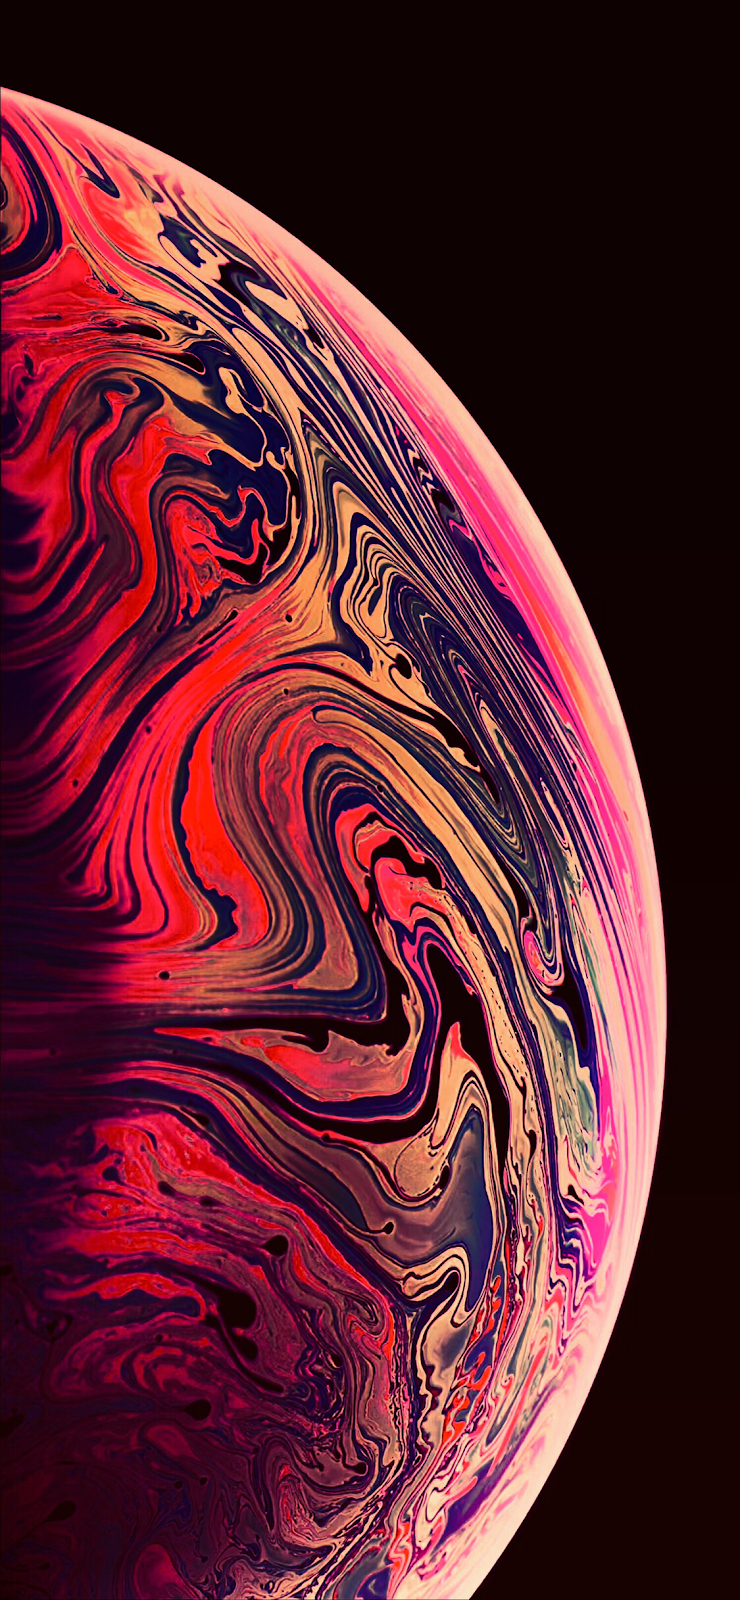 iPhone XS MAX Gradient Modd Wallpapers by AR72014 2 variants  Wall  Apple wallpaper iphone